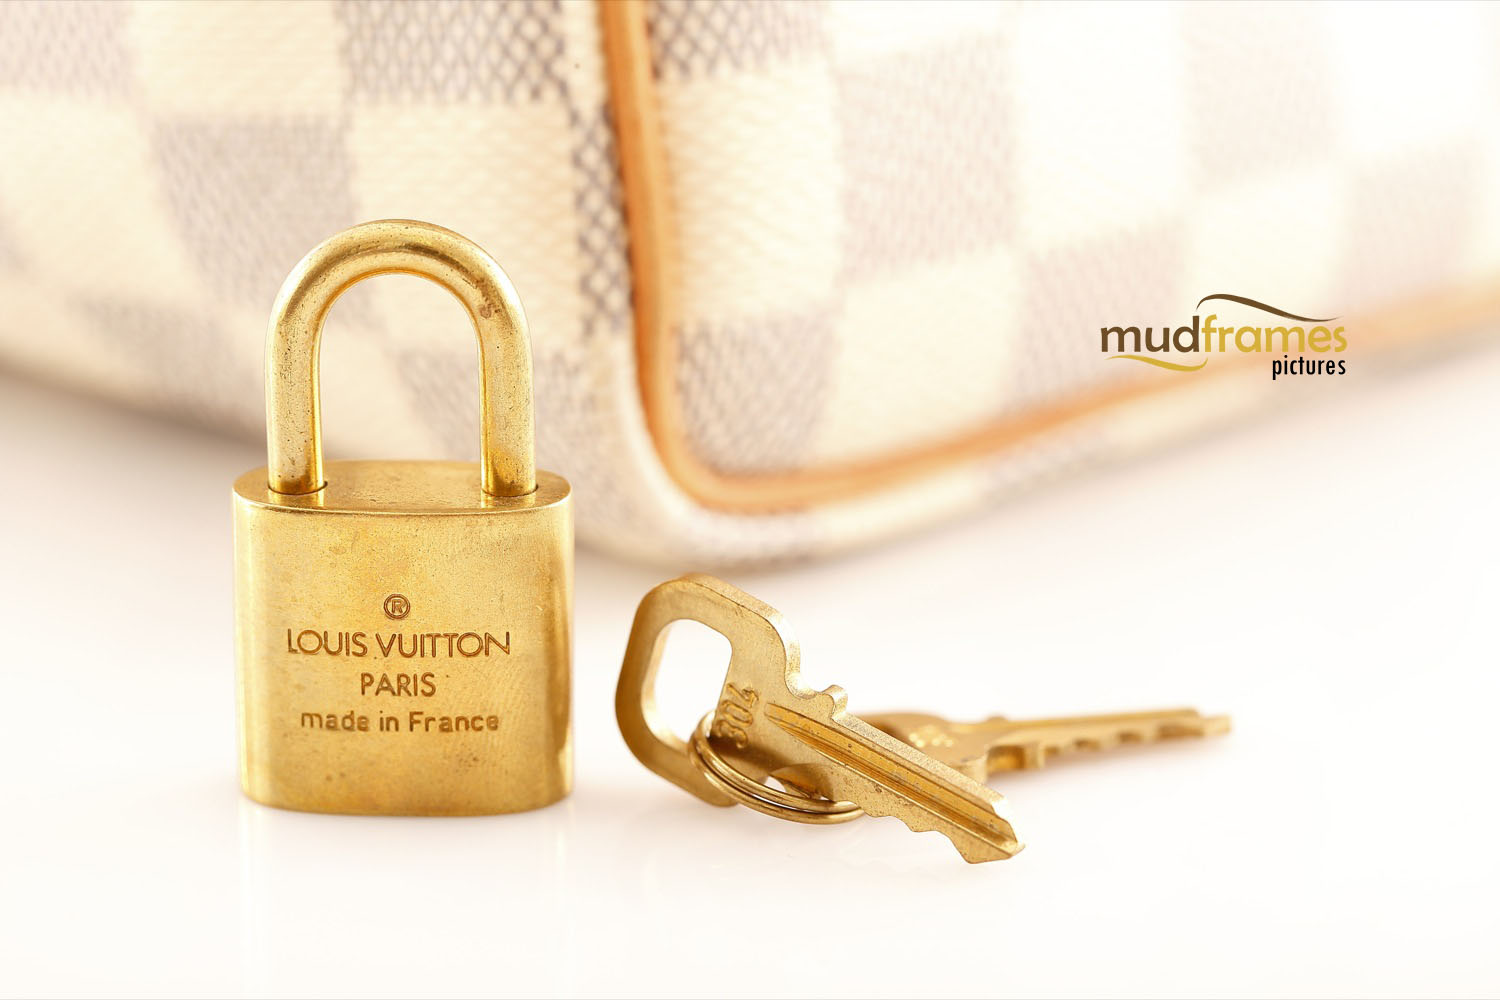 Louis Vuitton key lock on white background